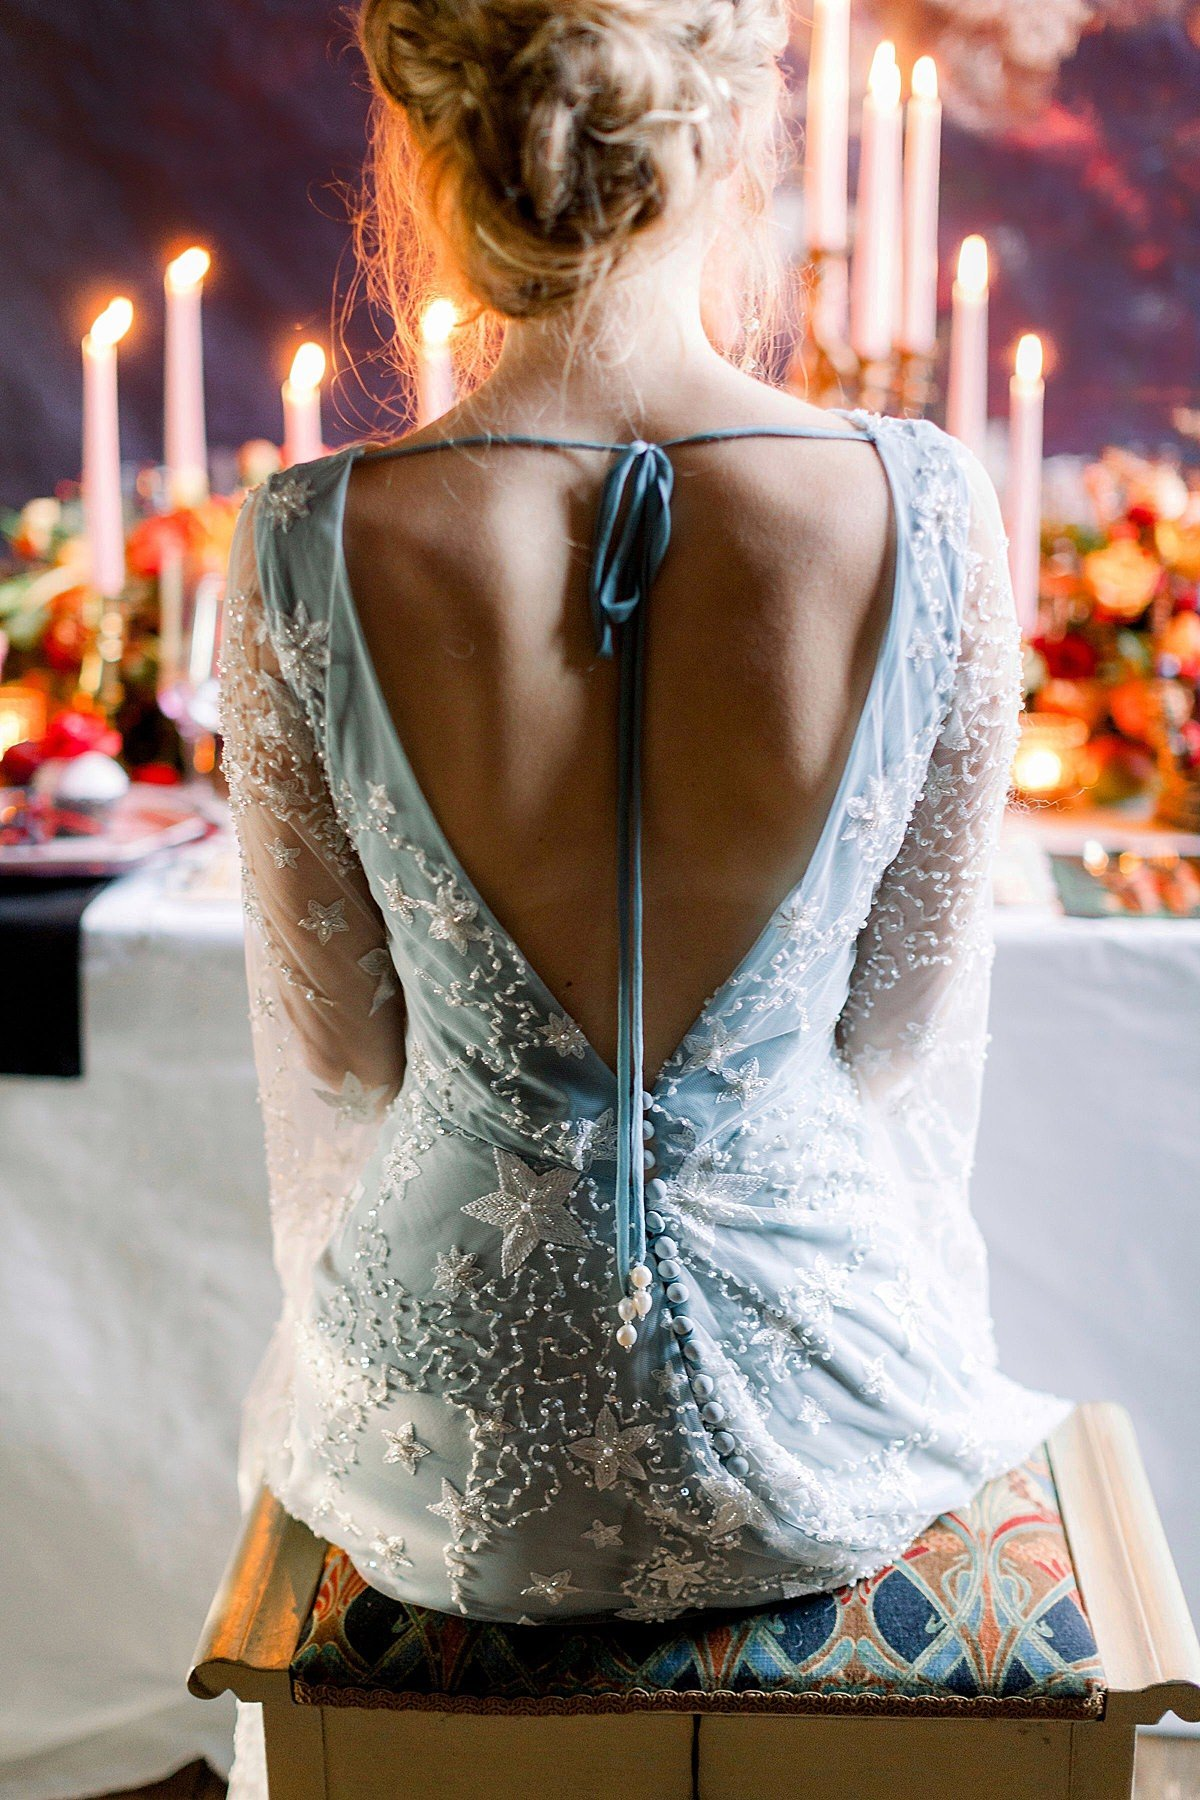 Briar-Rose-Starry-Dress-Candlelight-JFD-JoBradbury (7)